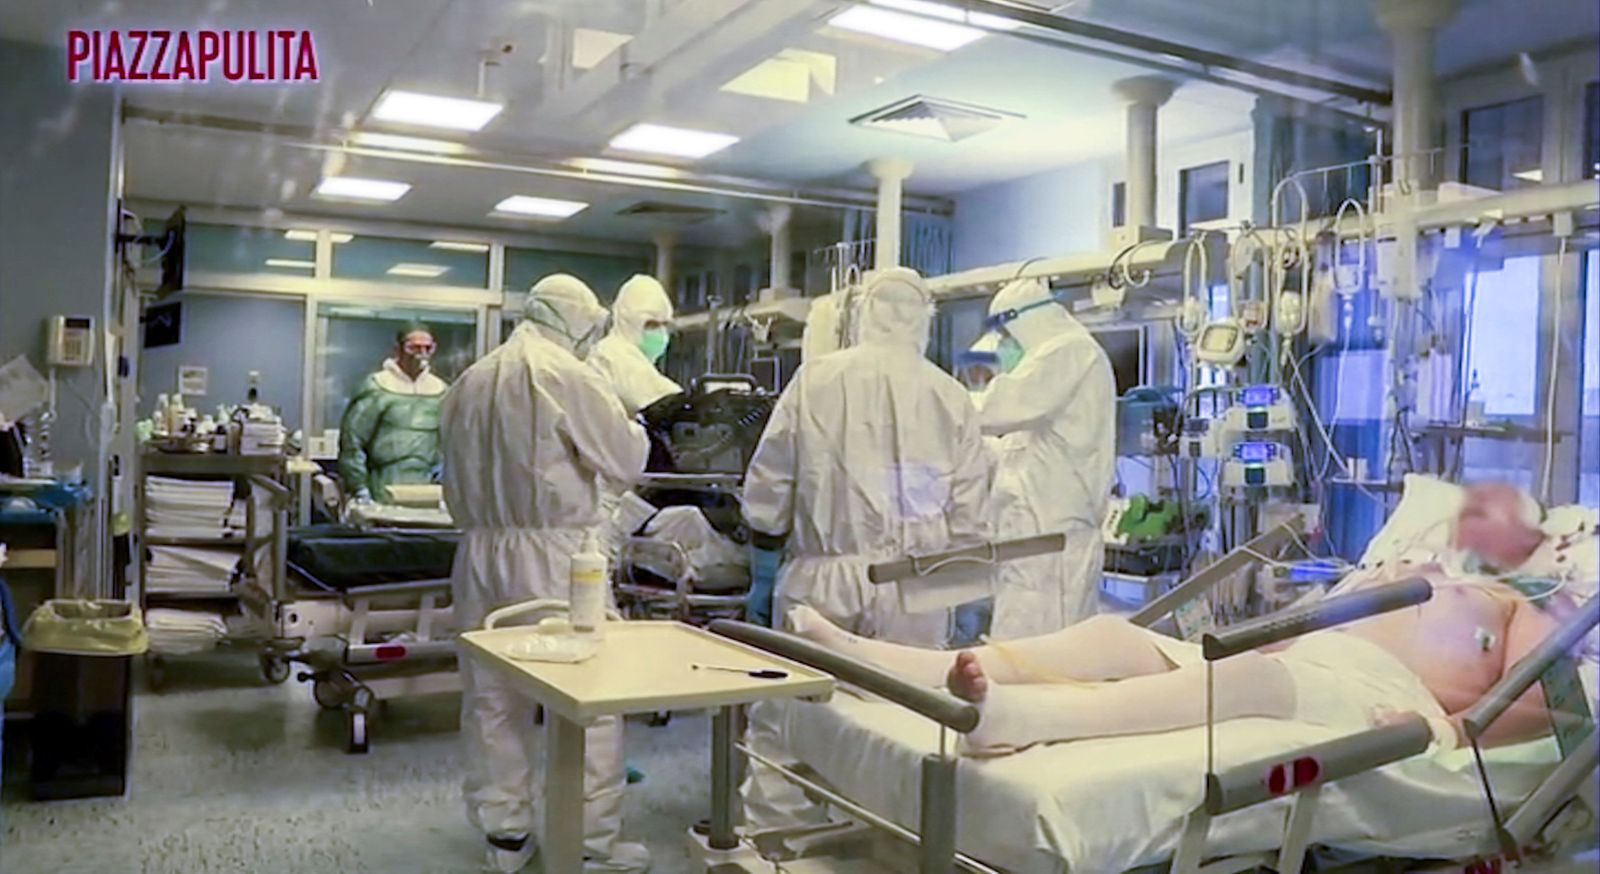 Medical staff in protective suits treat coronavirus patients in an intensive care unit at the Cremona hospital in northern Italy